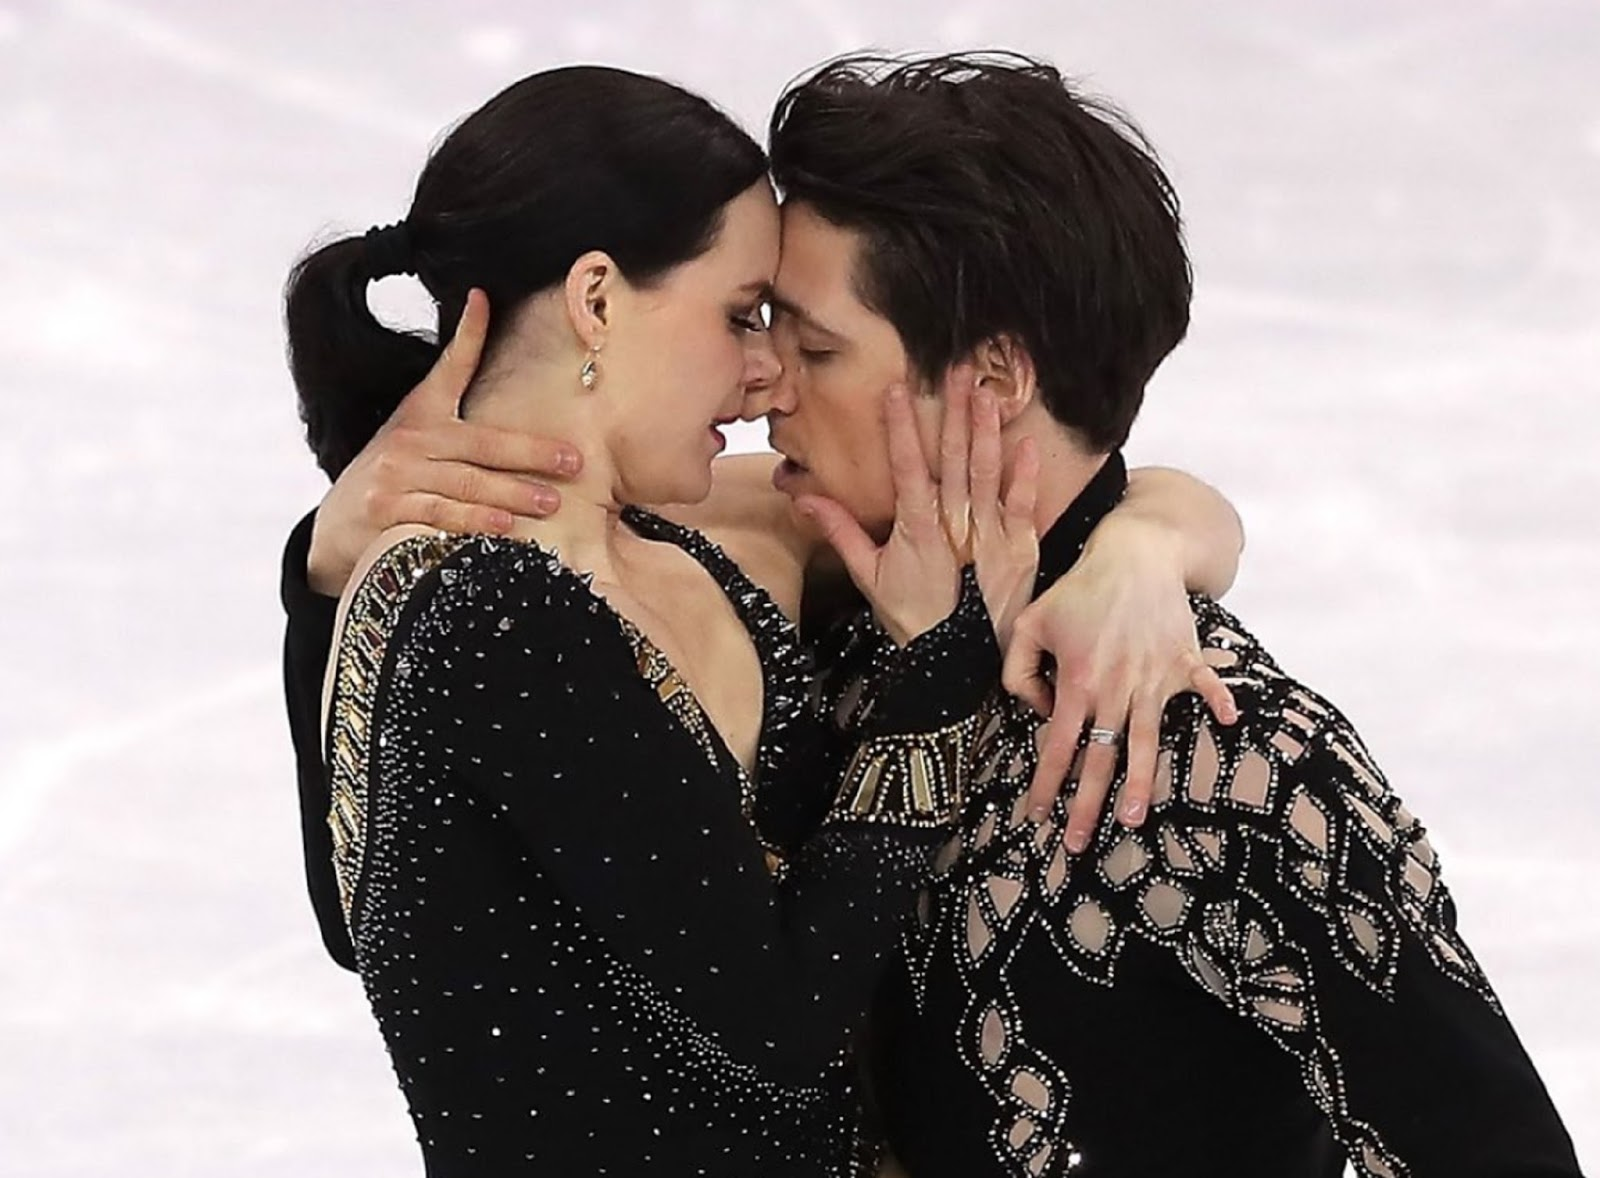 TESSA VIRTUE, SCOTT MOIR 4